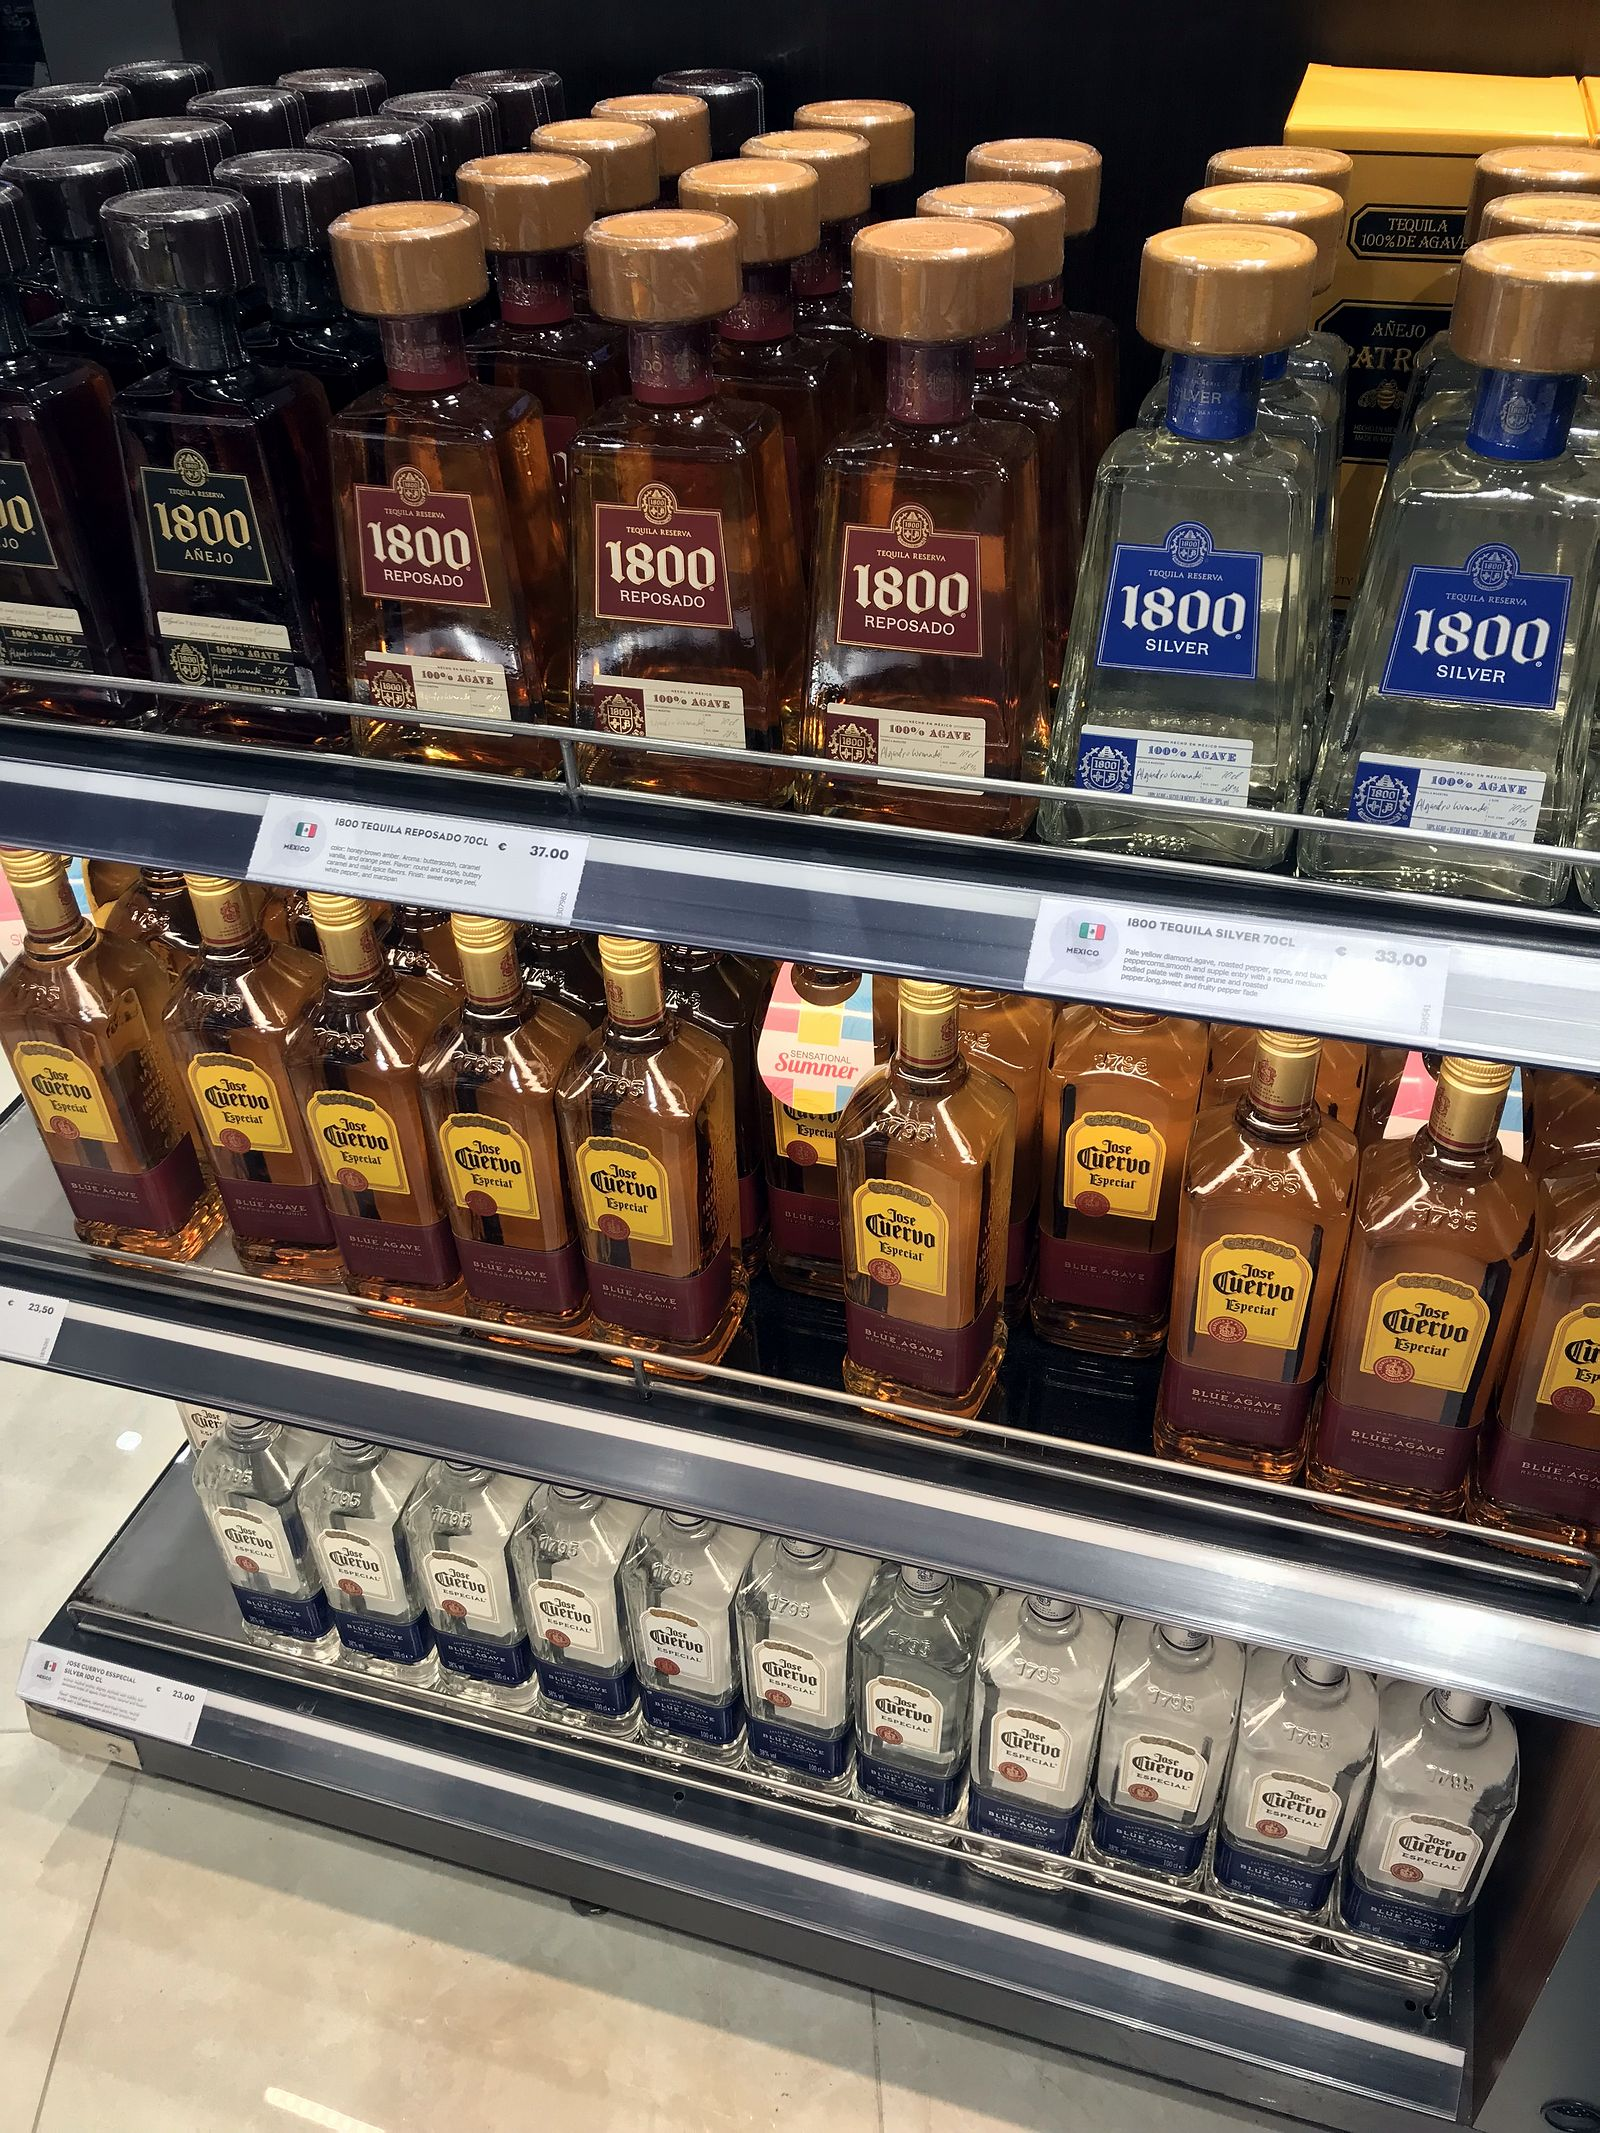 Duty free Antalya, august 2019, tequila 1800, Jose Cuervo